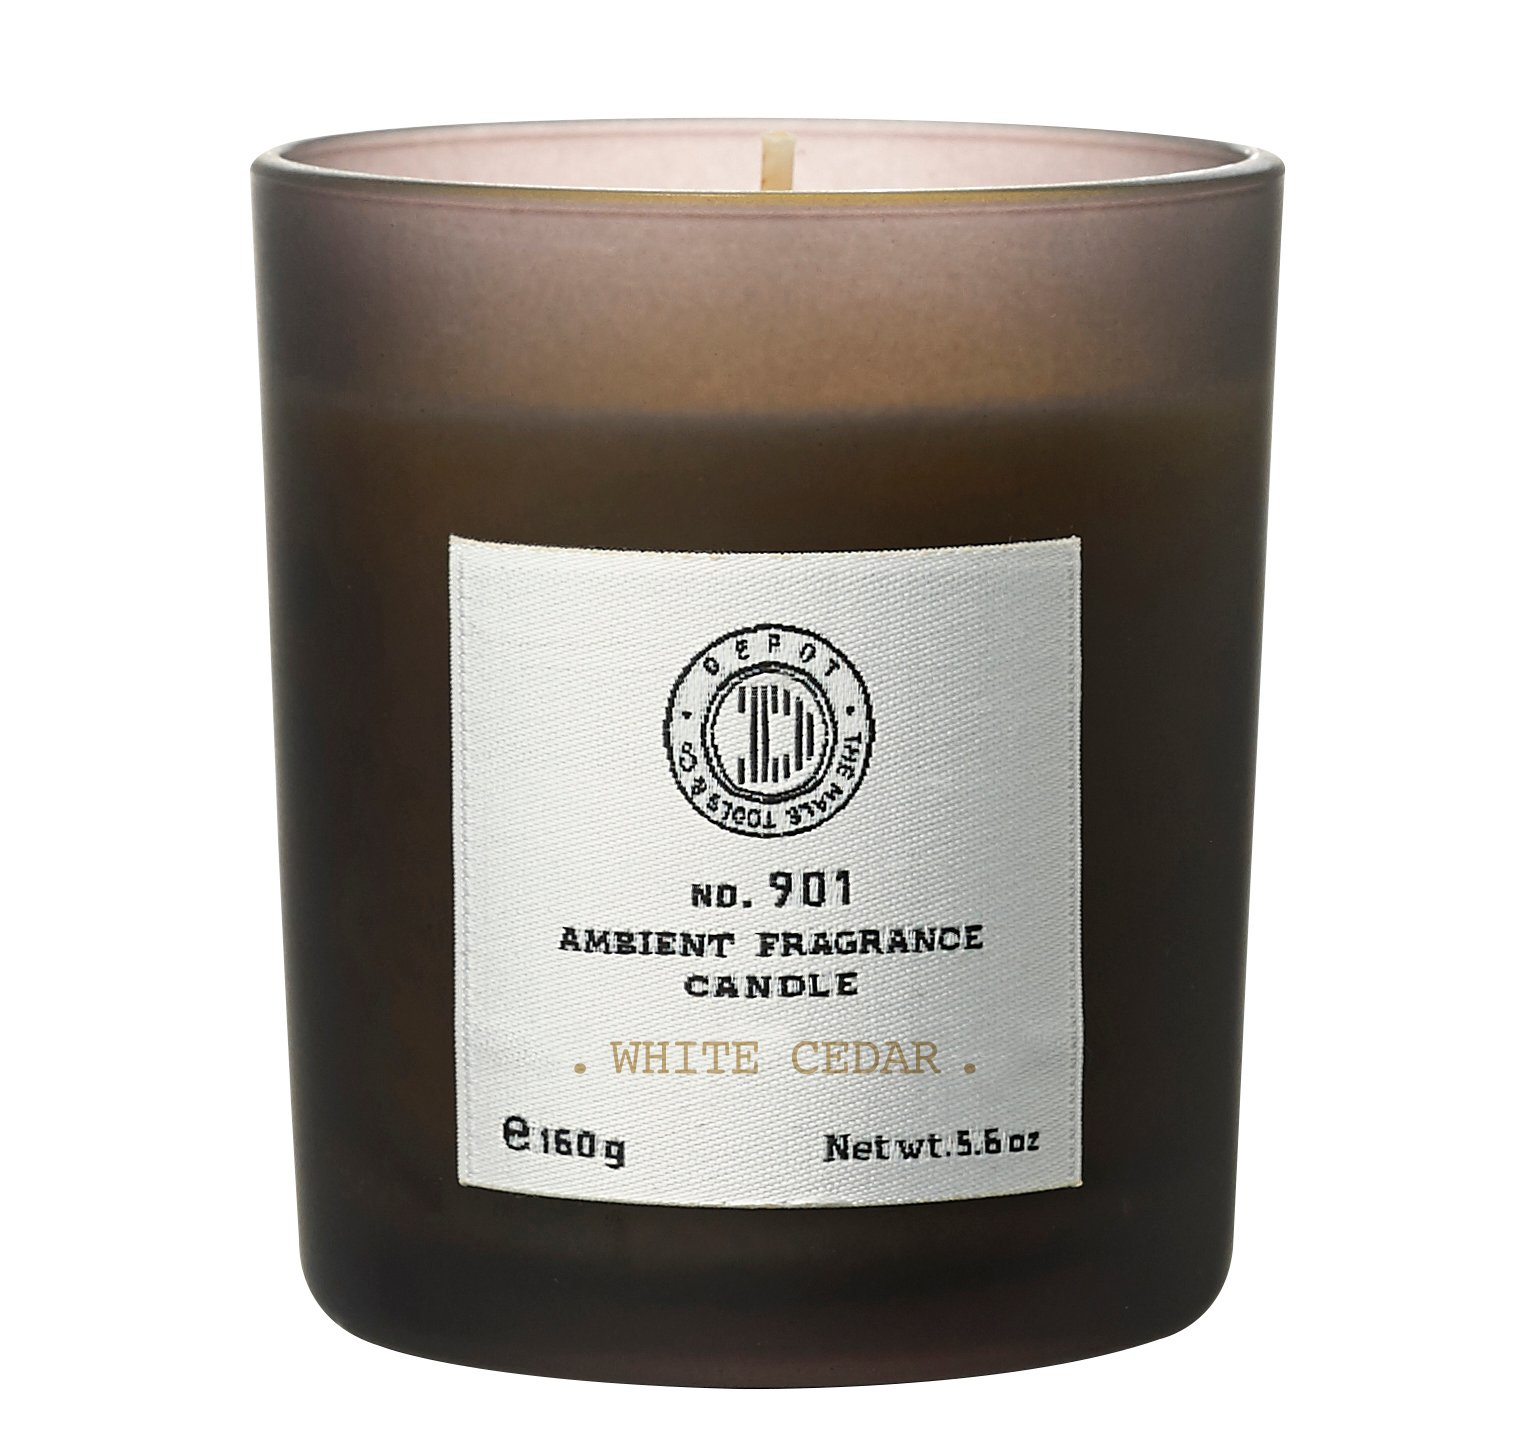 Depot - No. 901 Ambient Fragrance Candle - White Ceder